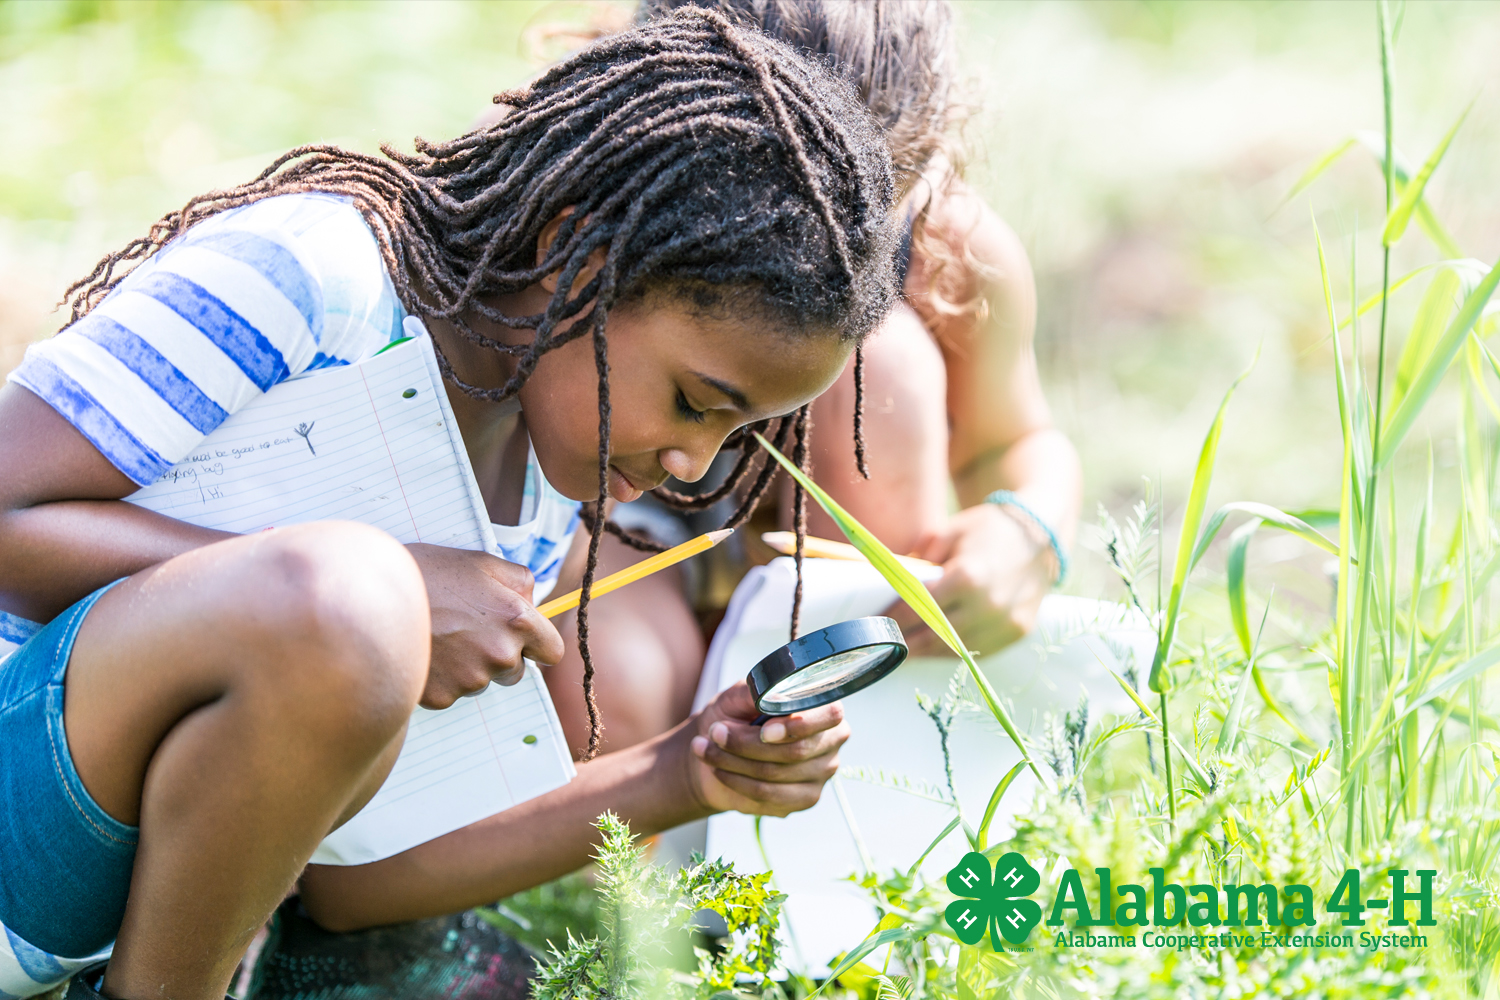 Alabama 4-H Project WILD 4-H member looking through magnifying glass